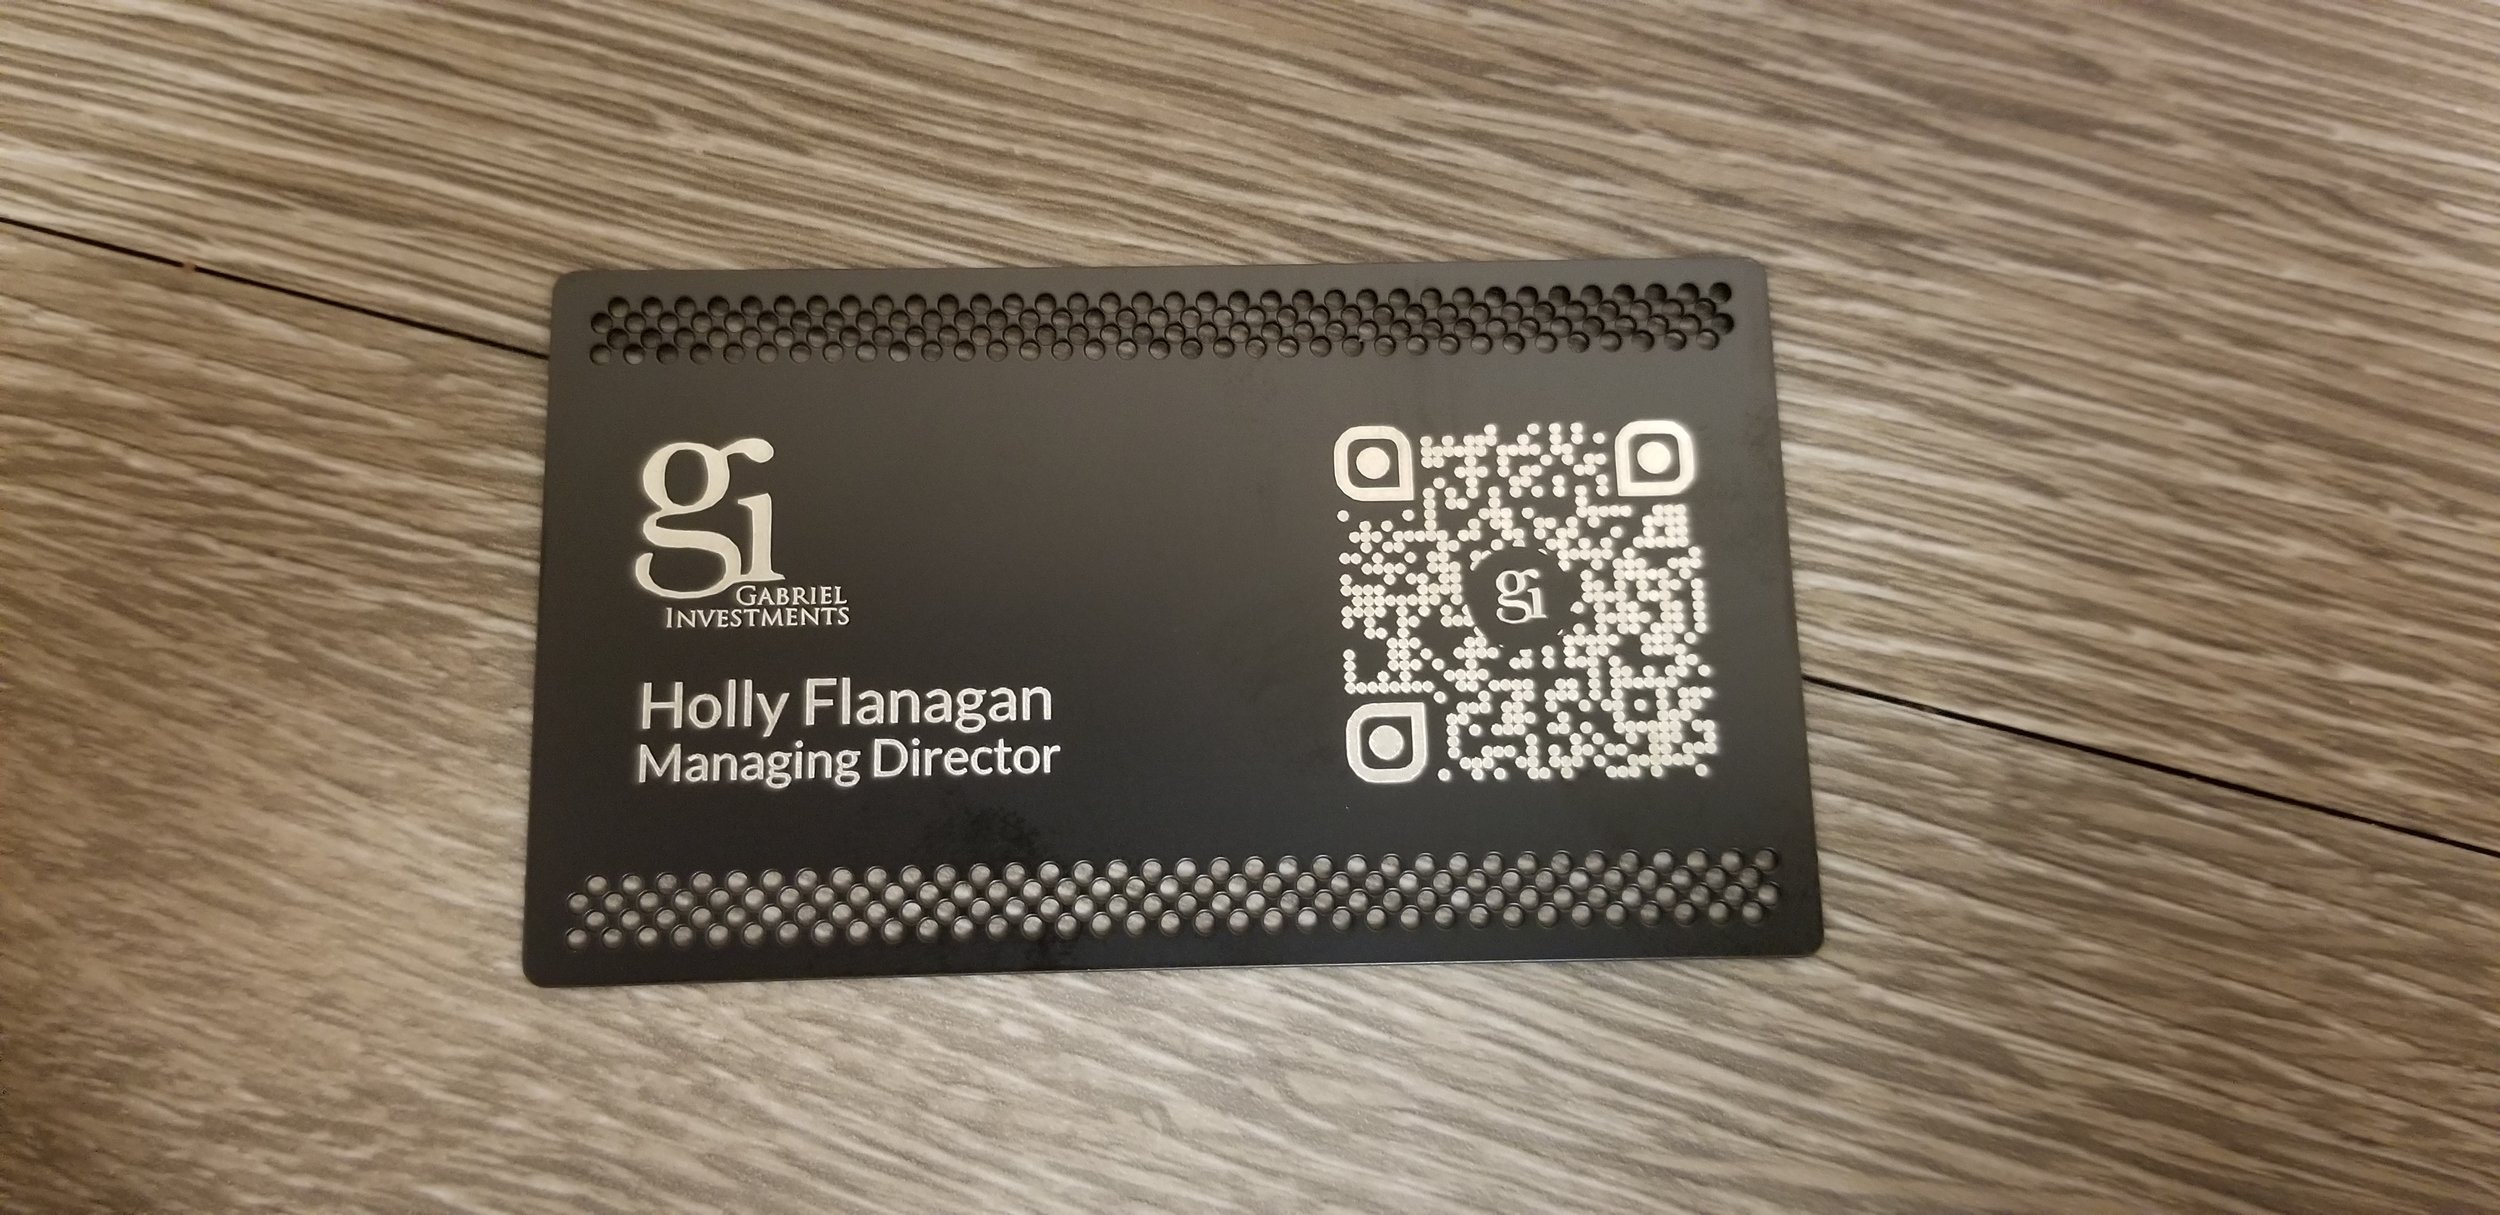 Laser Engraved Business Cards - Custom Engraved Metal Business Cards - QR Code Business Card - Branding Project - Engrave It Houston